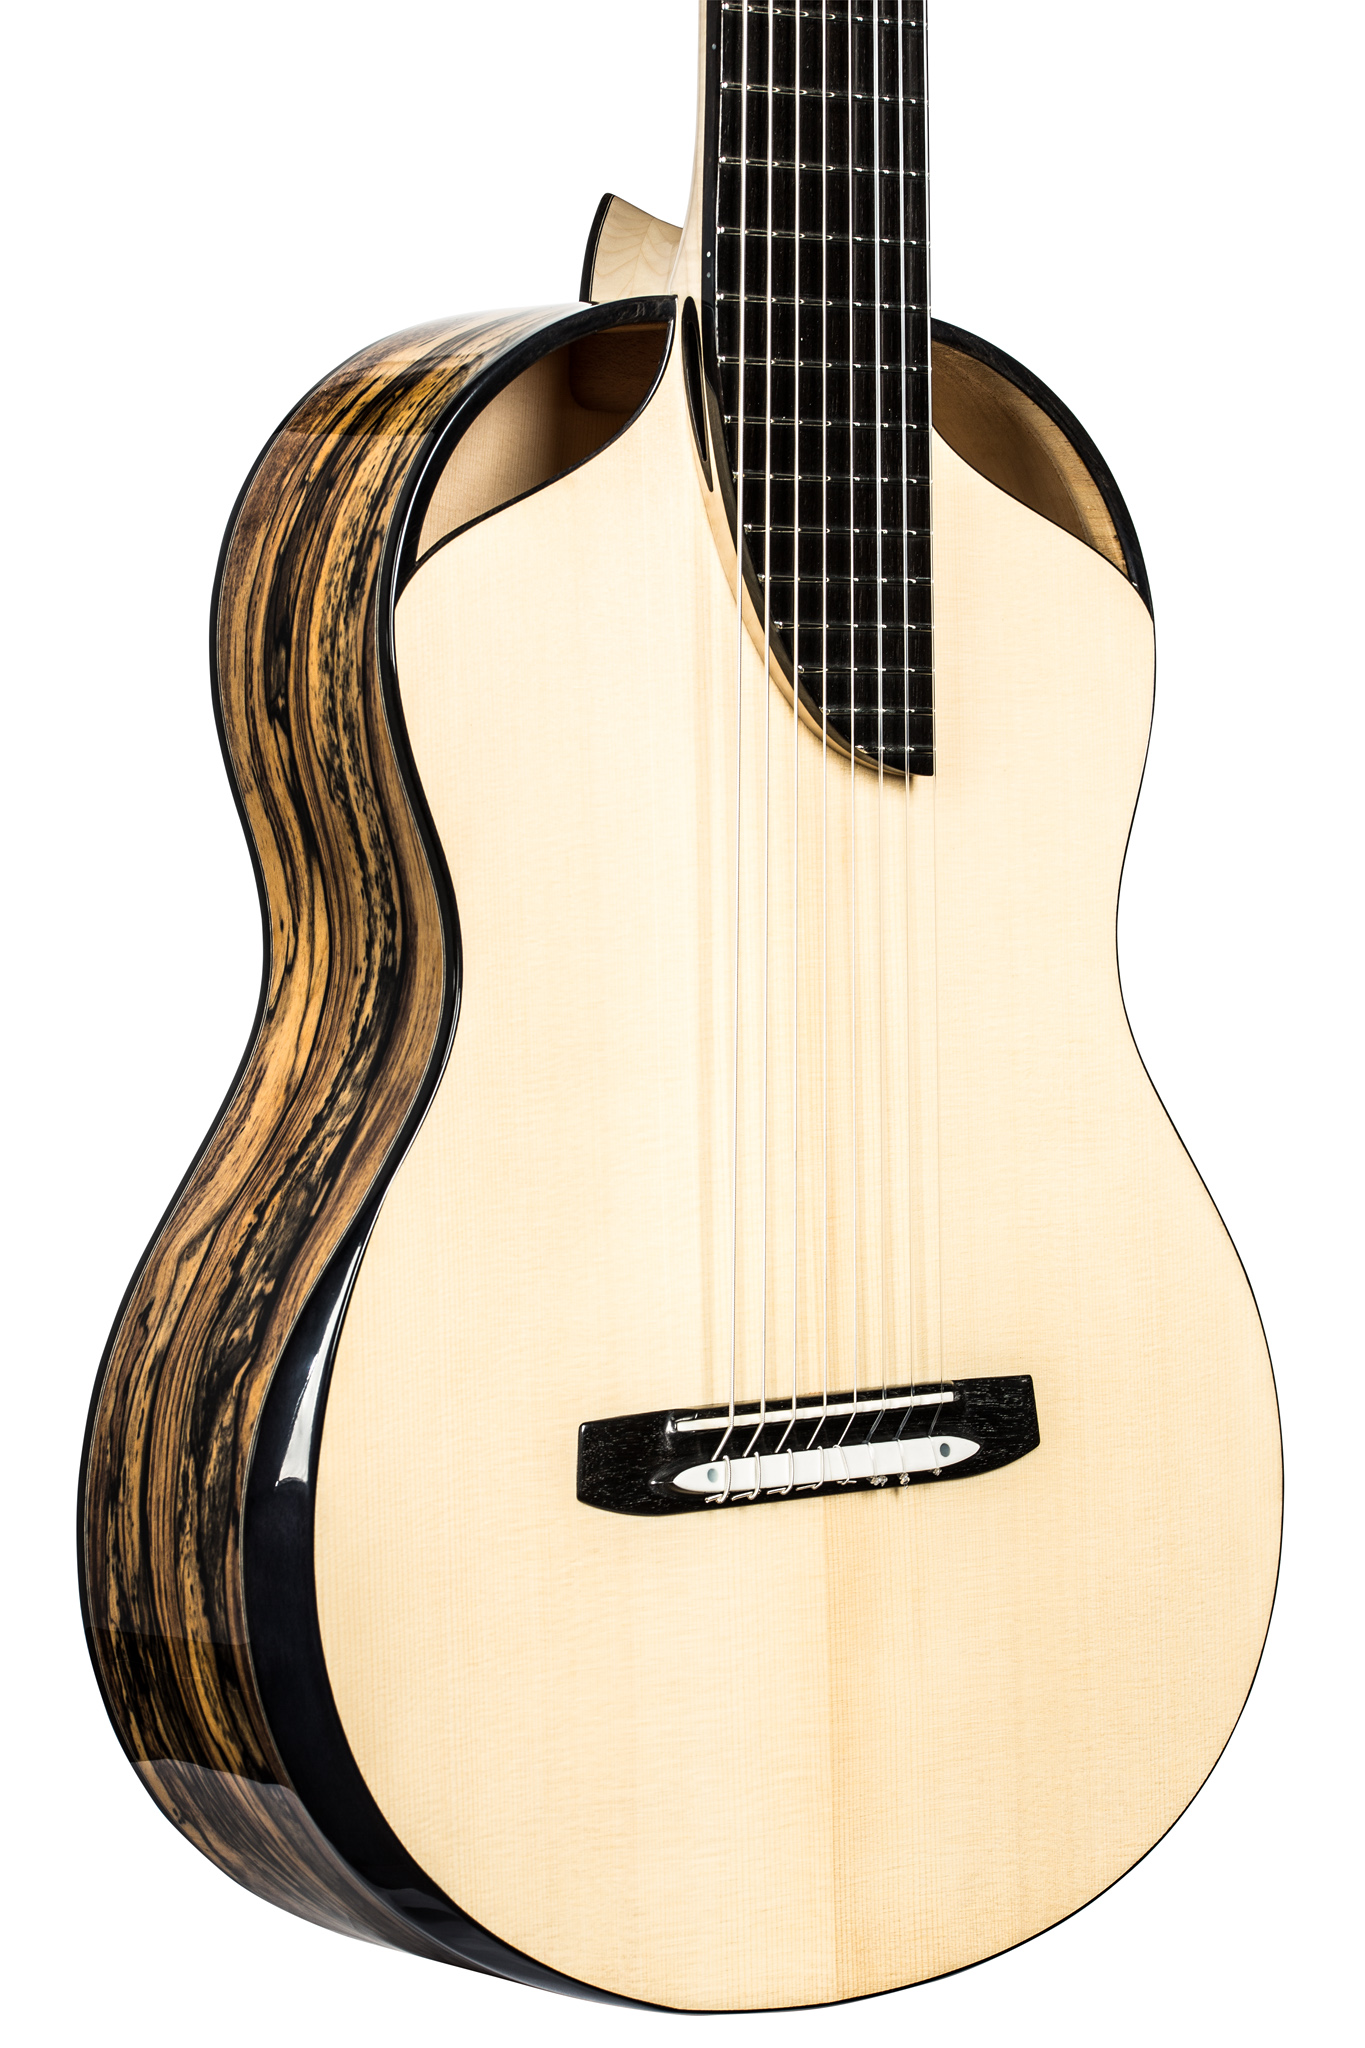 8-string classical guitar body